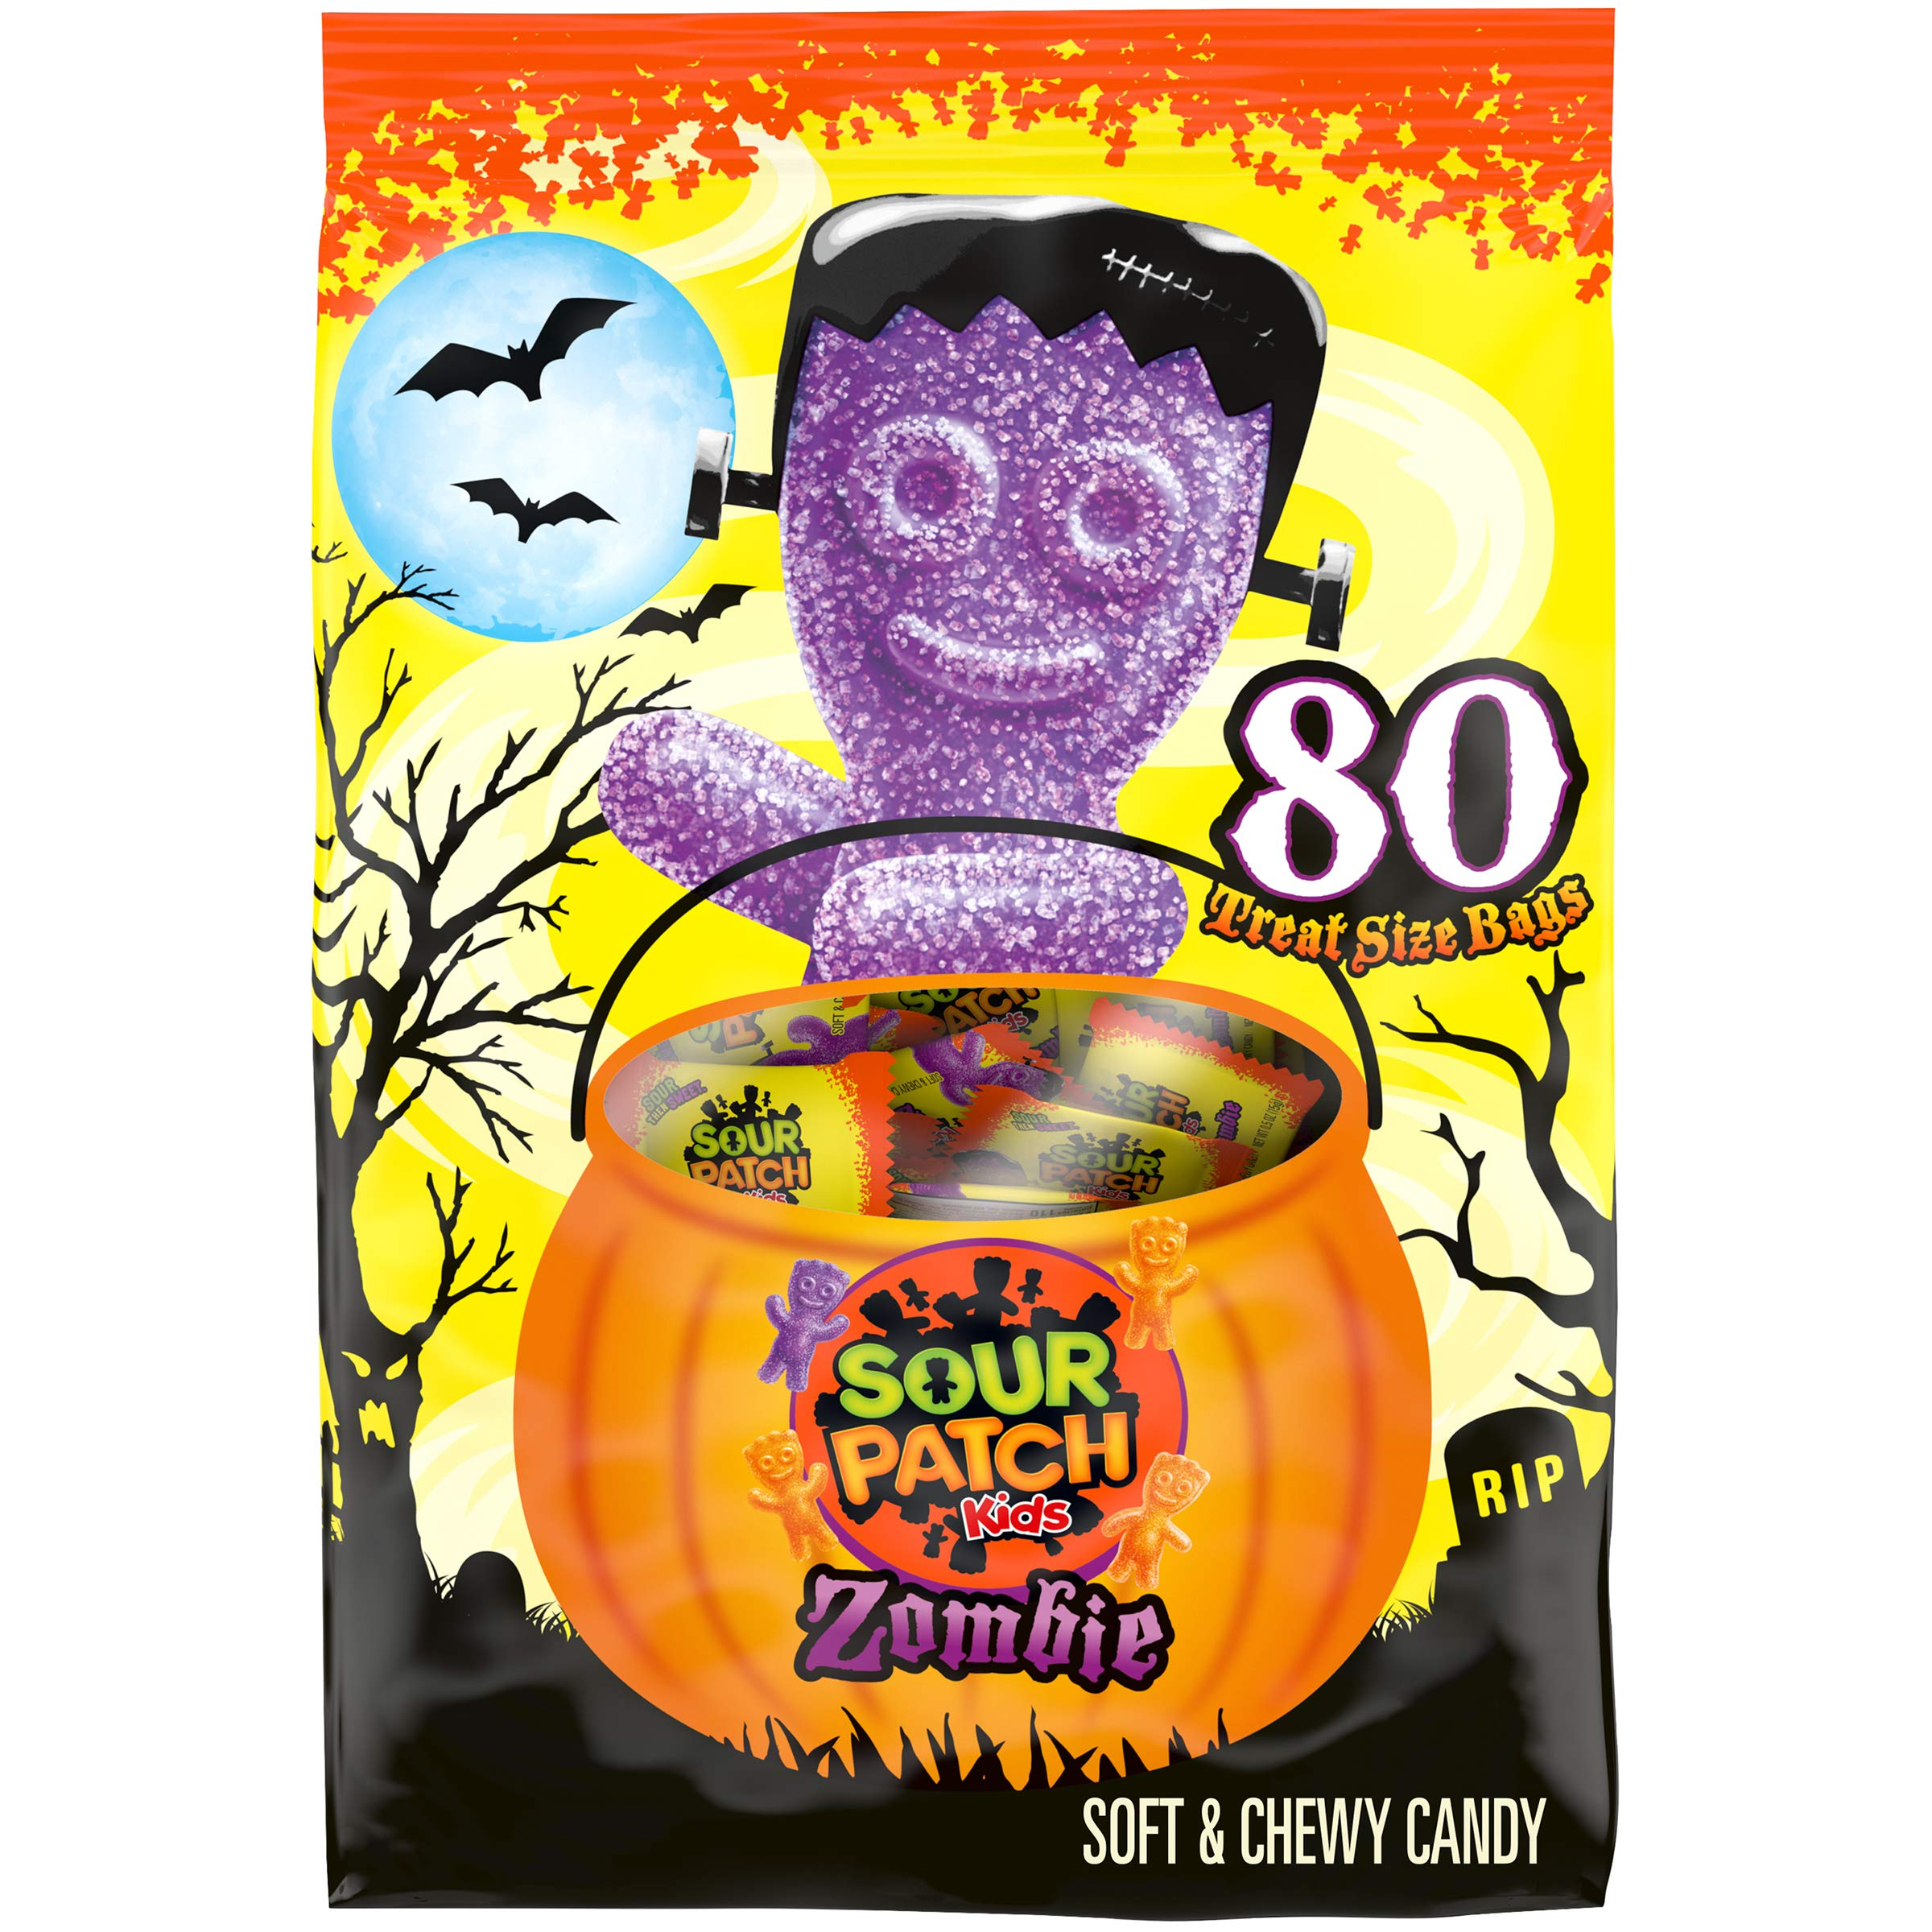 SOUR PATCH KIDS Zombie Halloween Candy, 80 Trick or Treat Size Packs (0.5 oz.) by Sour Patch